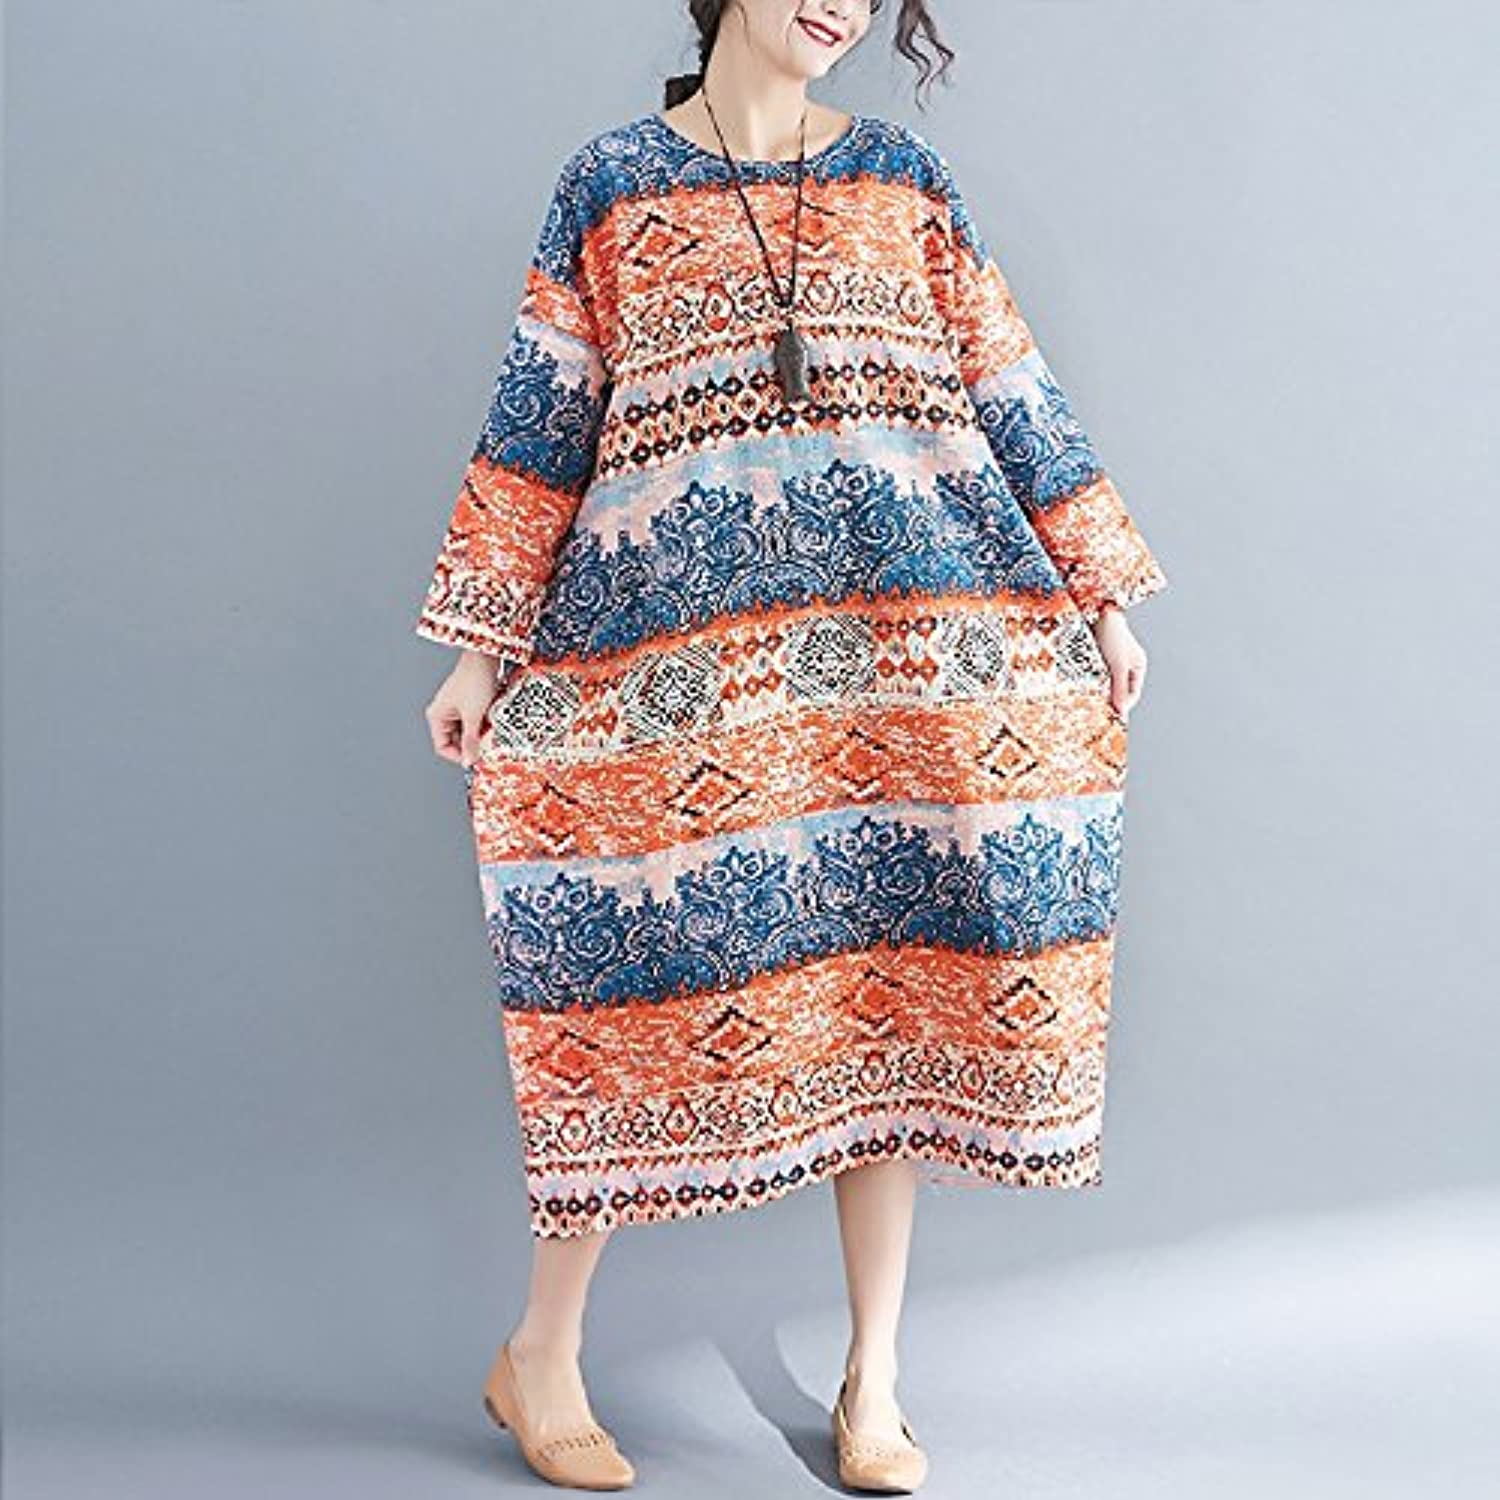 XIURONG Spring Sleeved Cotton Dress Loose Thin Woman